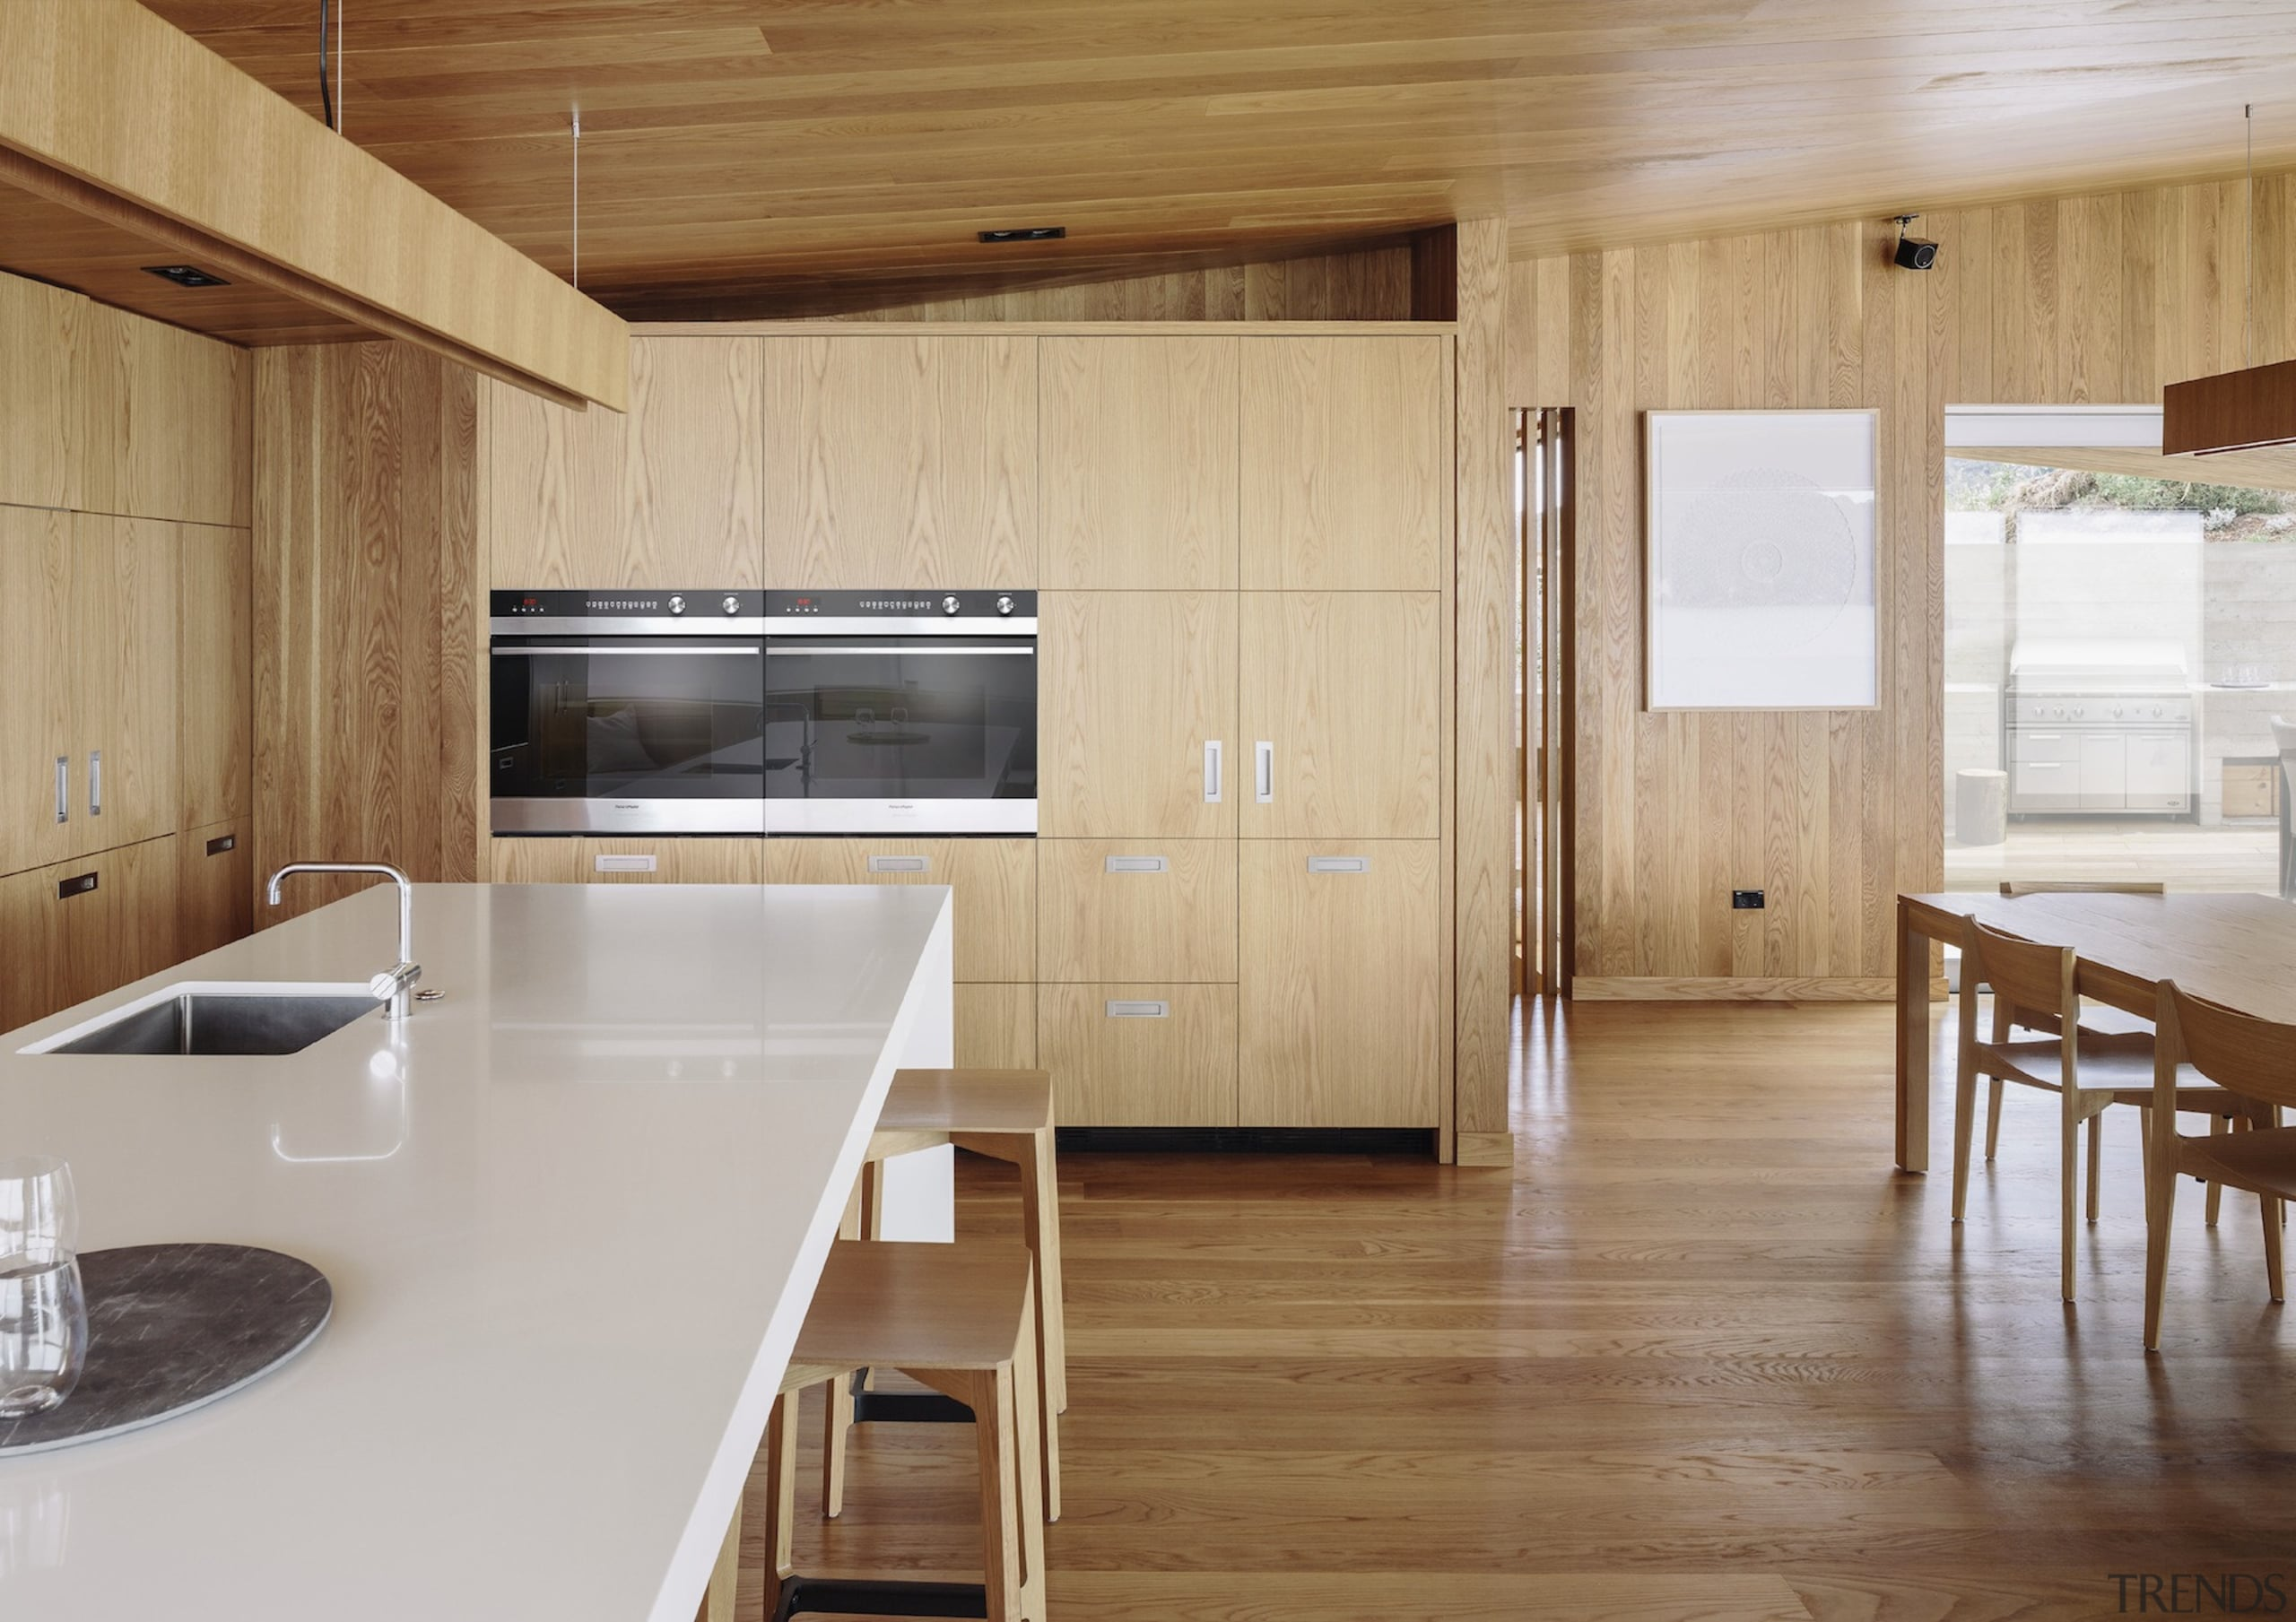 The Scandinavian-style interiors, lined with American oak, exude architecture, countertop, floor, flooring, hardwood, house, interior design, kitchen, real estate, wood, wood flooring, brown, gray